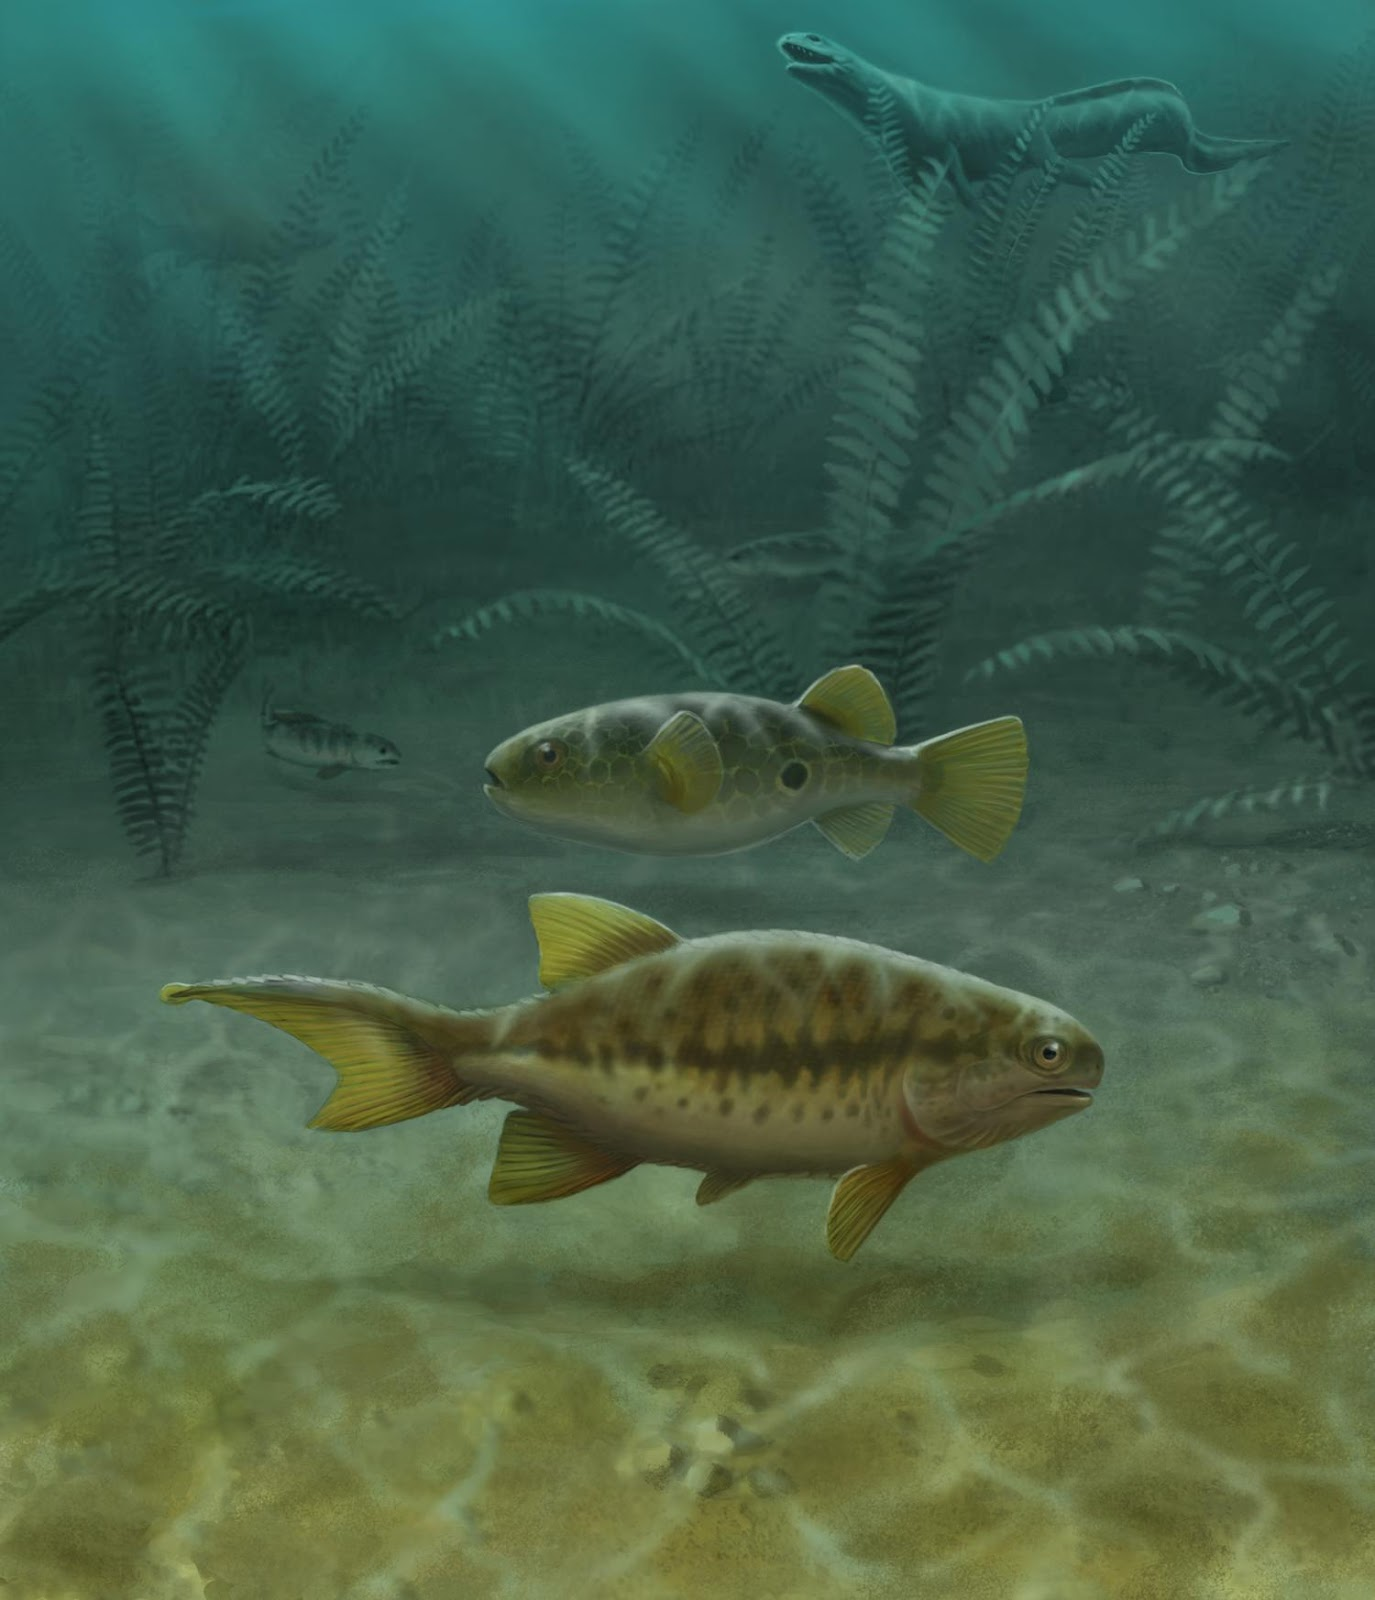 Fish fossils reveal how tails evolved